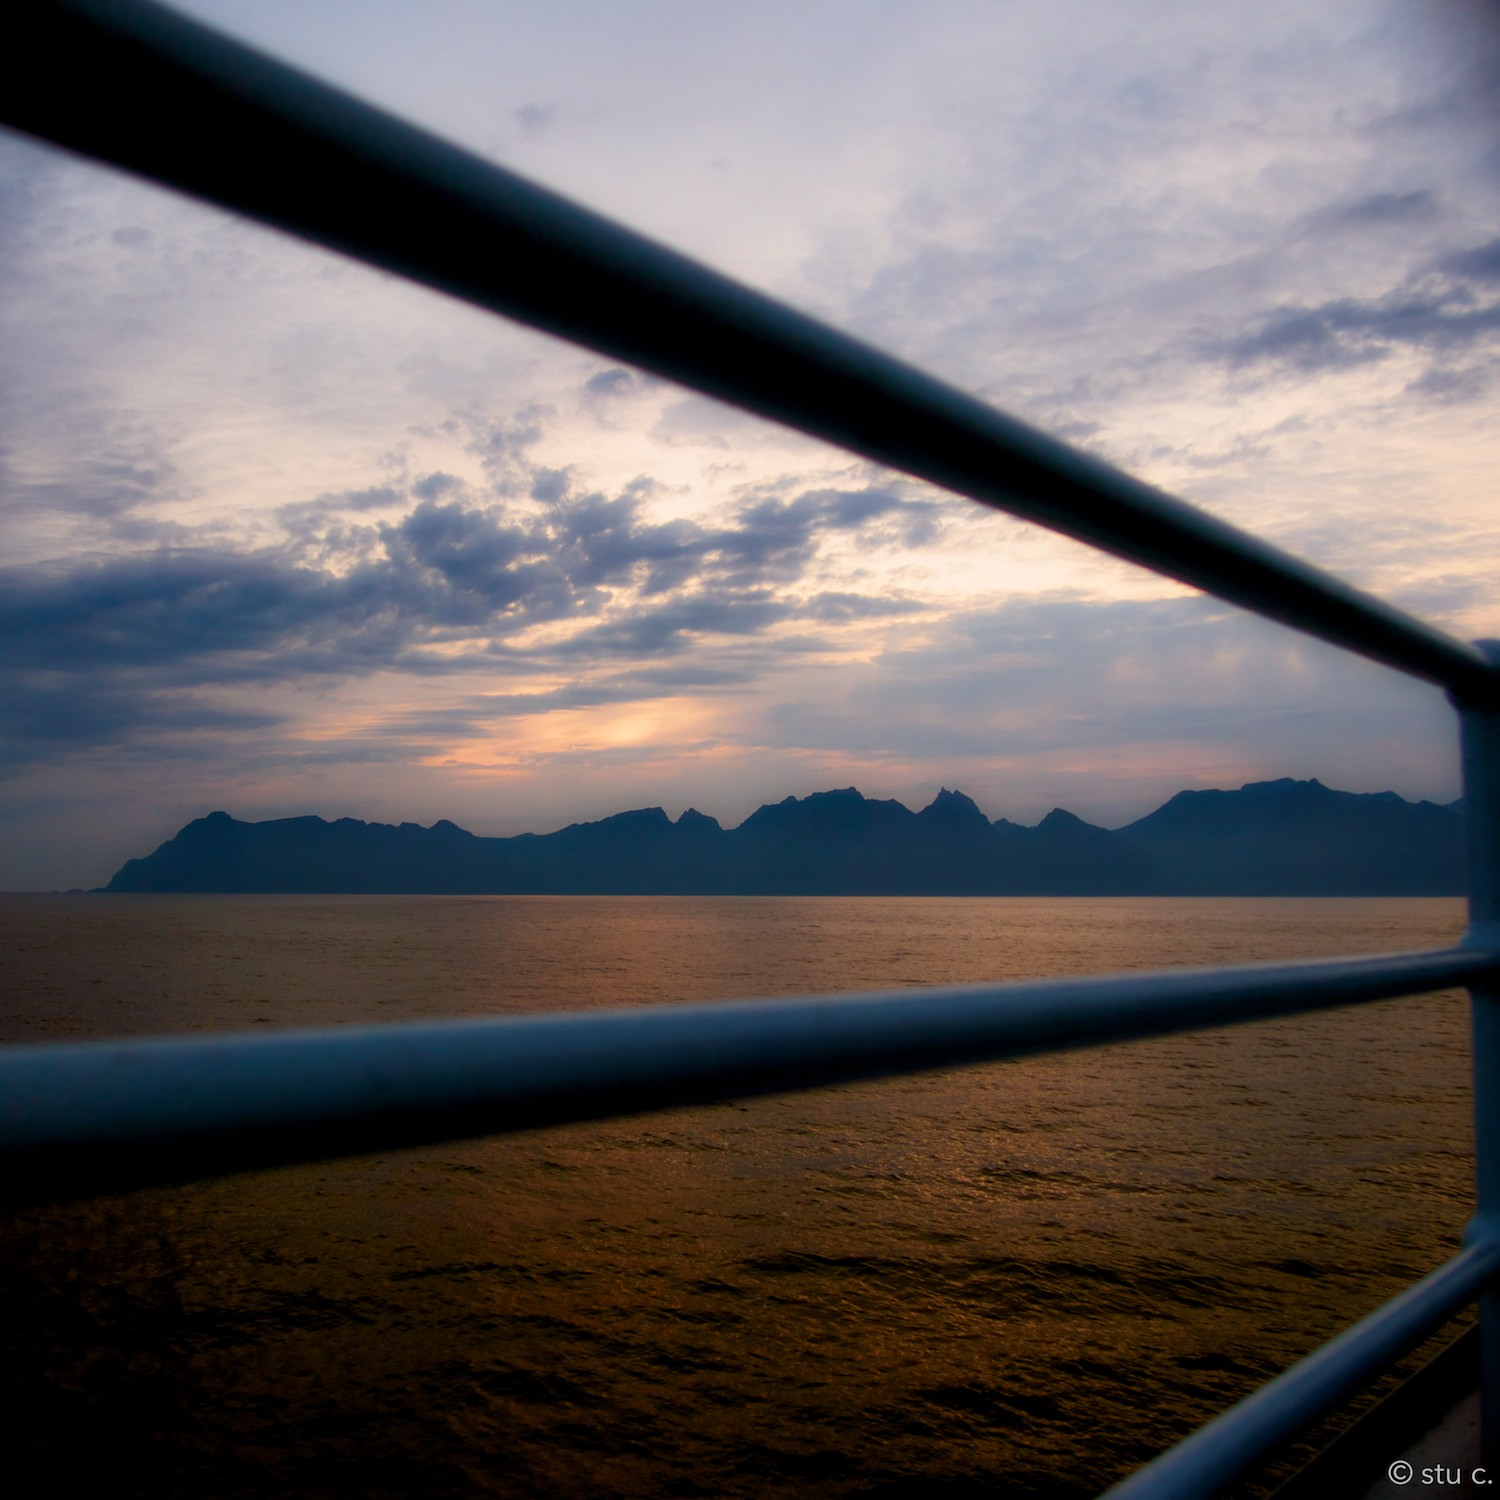 Sunset over the the mountains which comprise the Lofoten Island chain - this was the view from the ferry as we approached Moskenes.